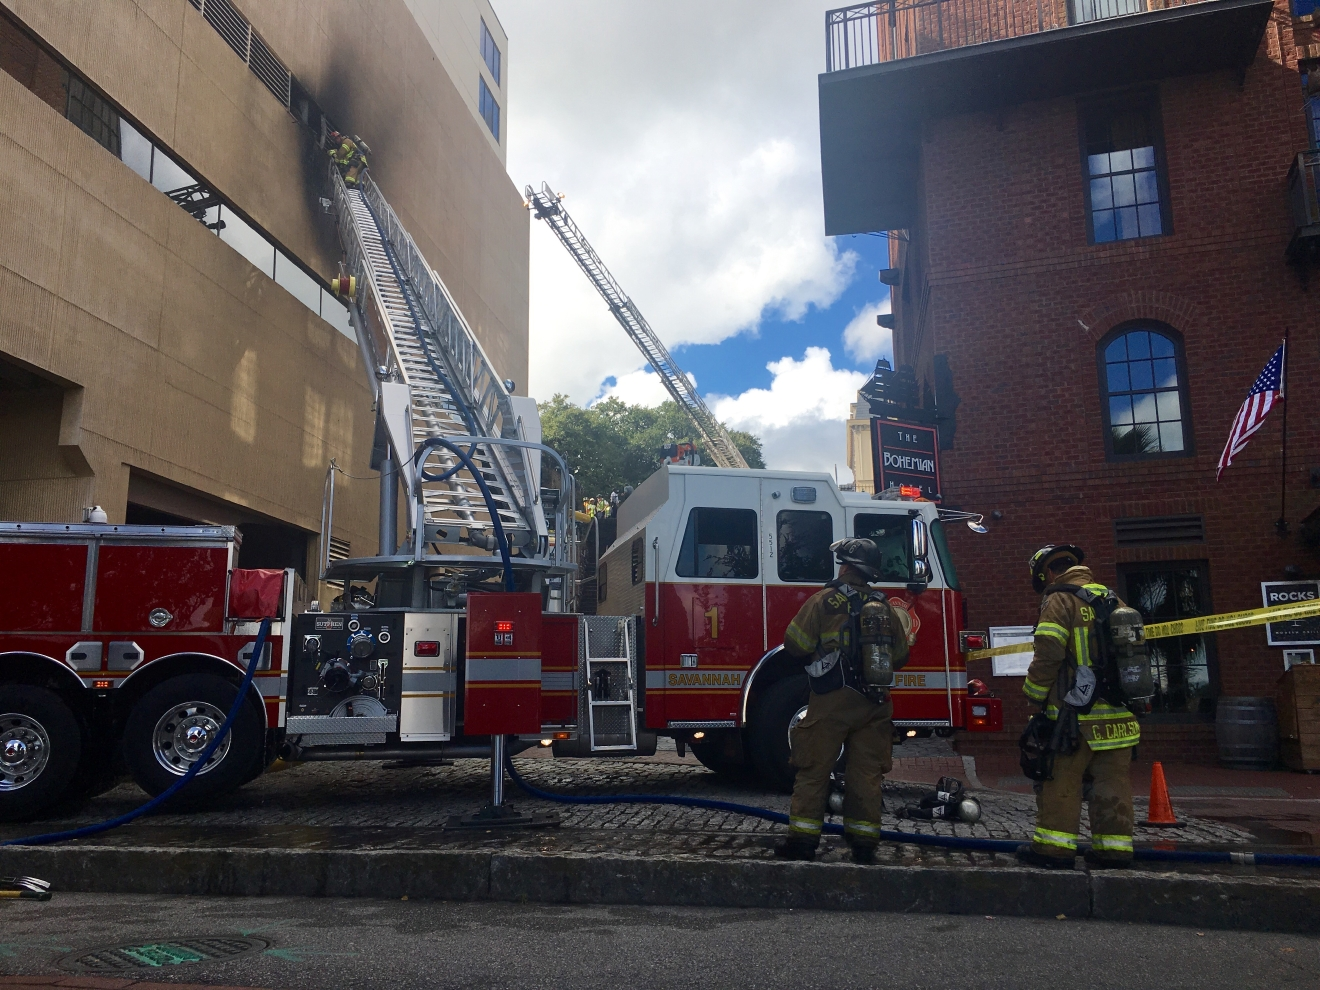 Fire broke out Monday morning at the Hyatt Hotel in Downtown Savannah (Credit: Josie Gregory)